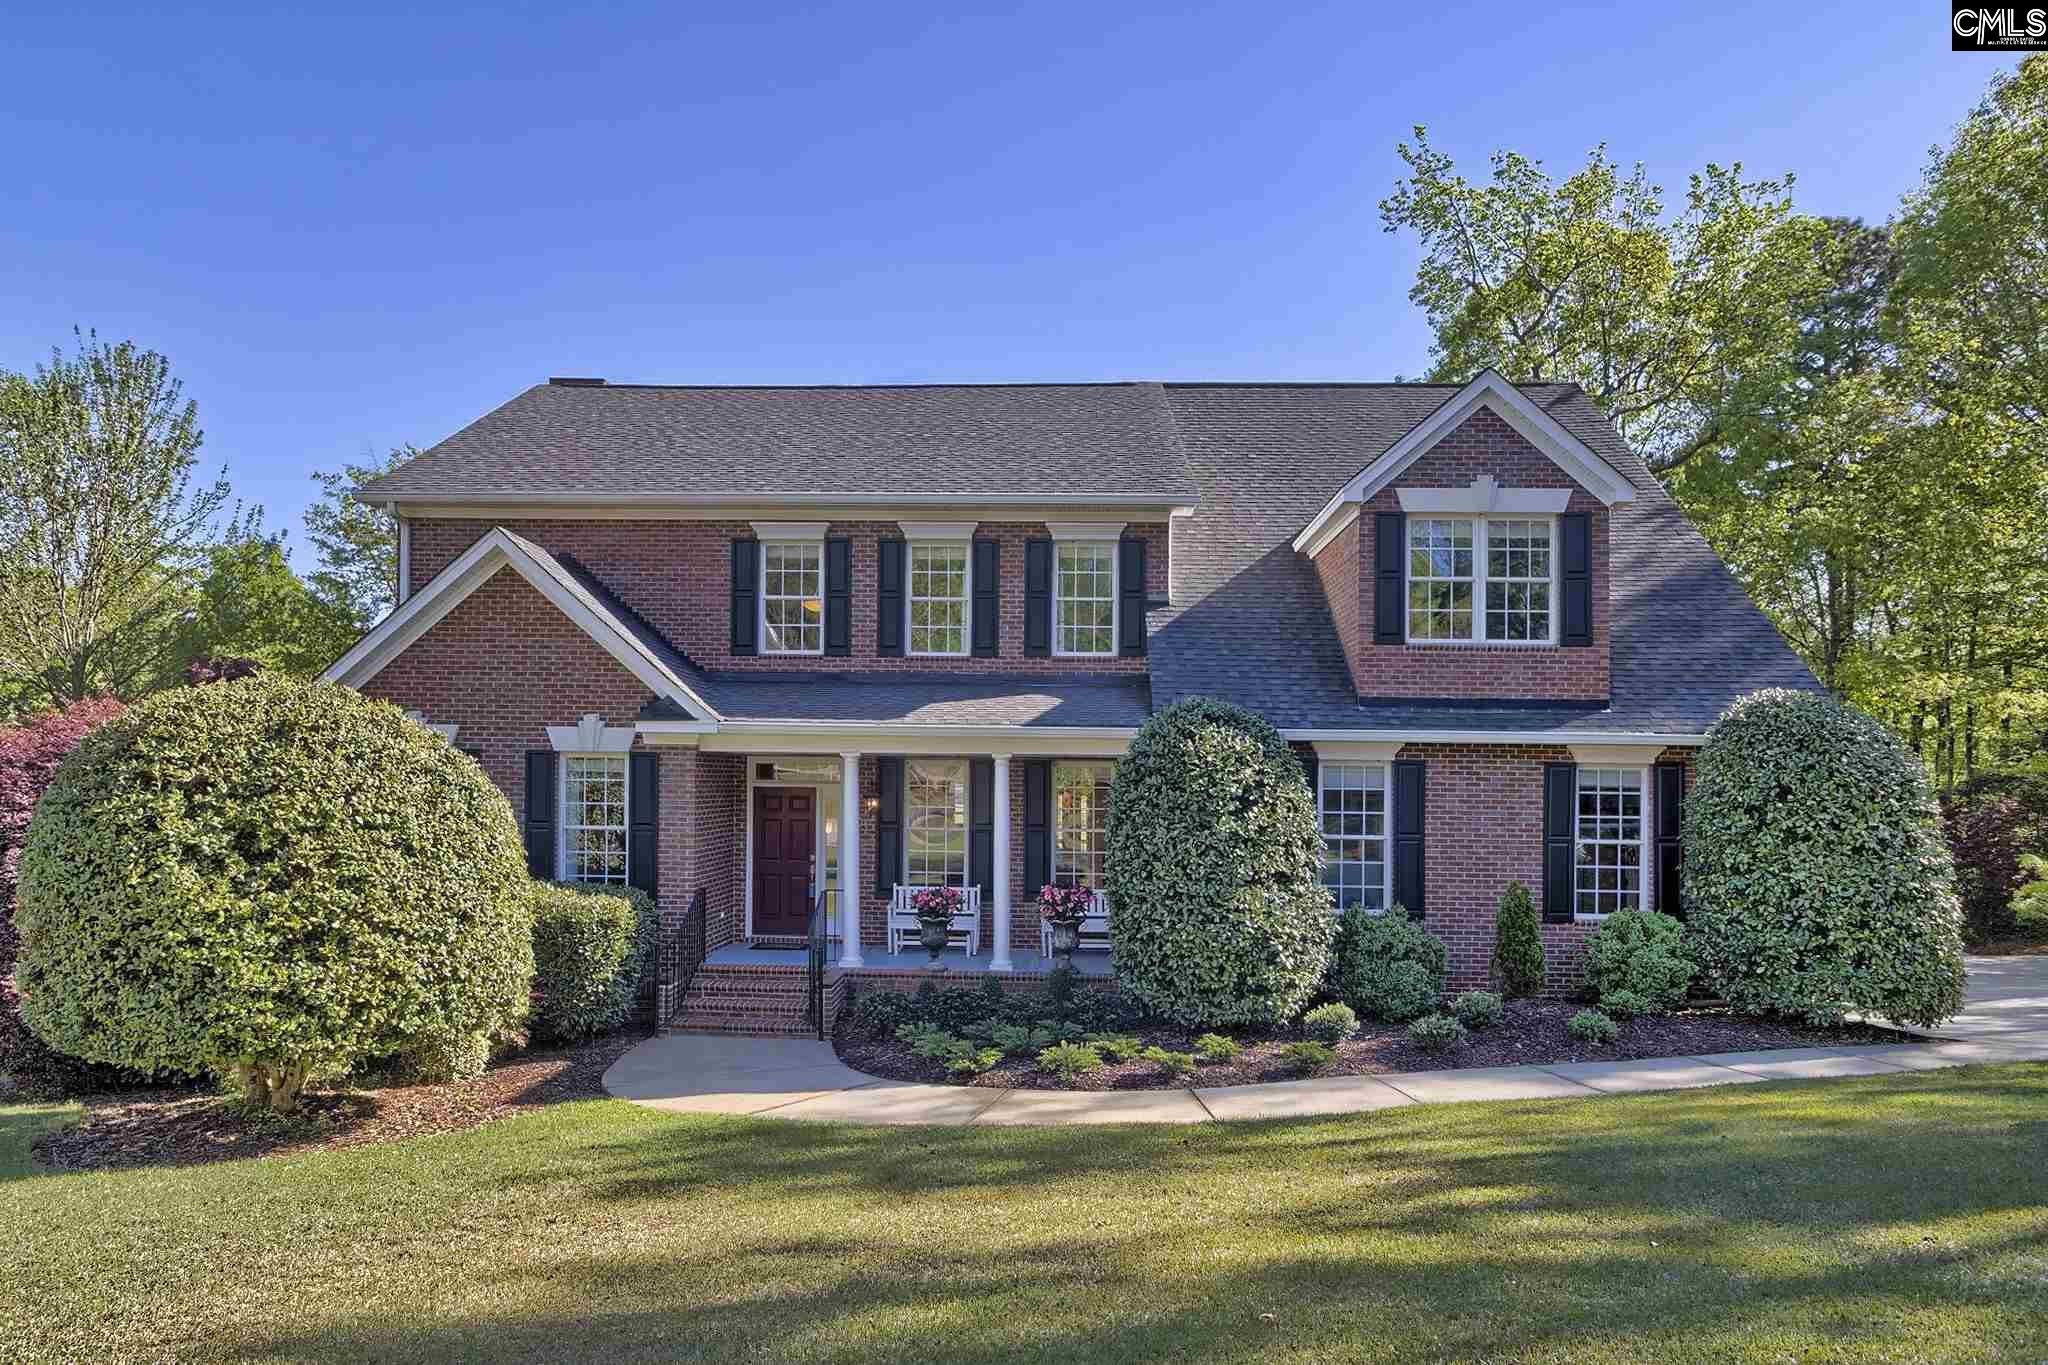 201 Lochweed Columbia, SC 29212-8535